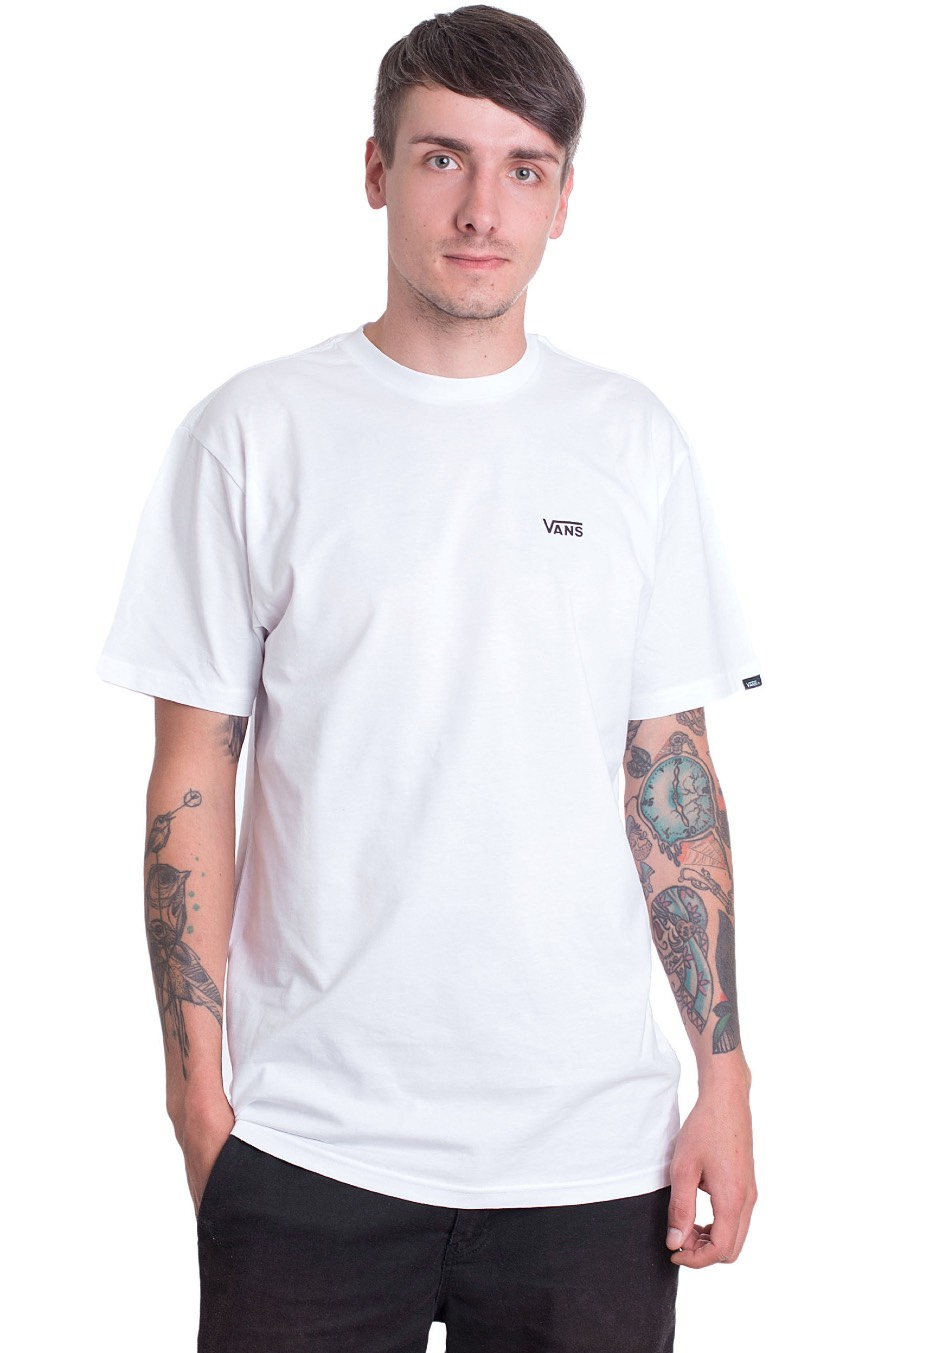 08335f860964db Vans - Left Chest Logo White - T-Shirt - Impericon.com UK